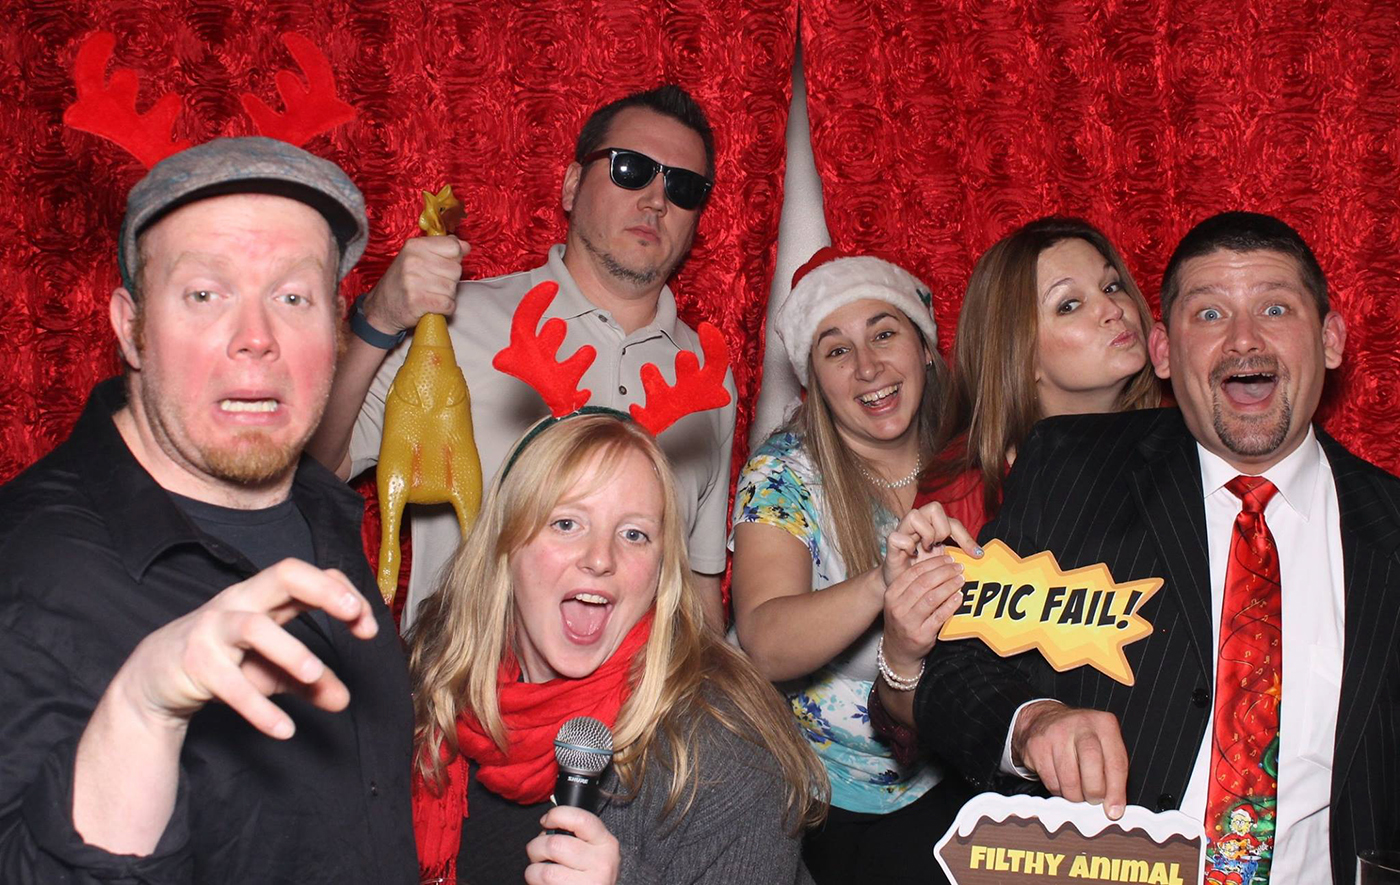 All Occasions Photography Albany NY - Wedding Photography Funny Photographers Holding Silly Christmas Signs & Rubber Chicken